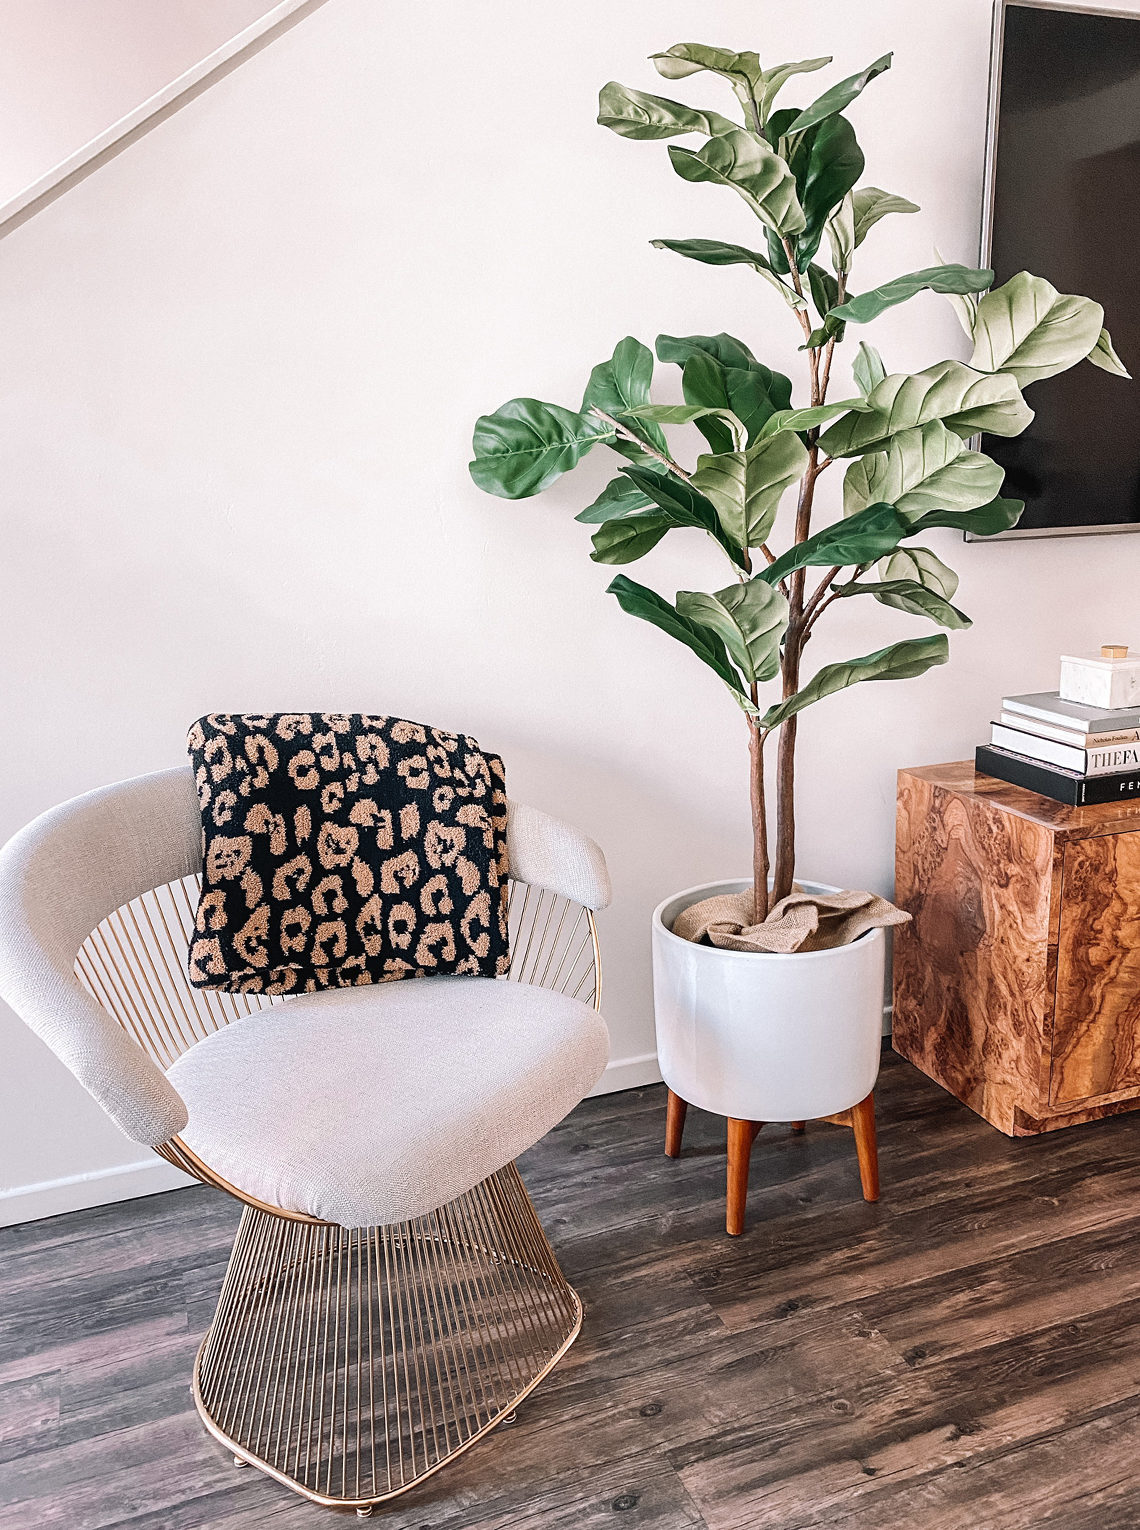 Fashion Jackson Living Room Decor Faux Fiddle Fig Tree Gold Platner Chair Leopard Blanket